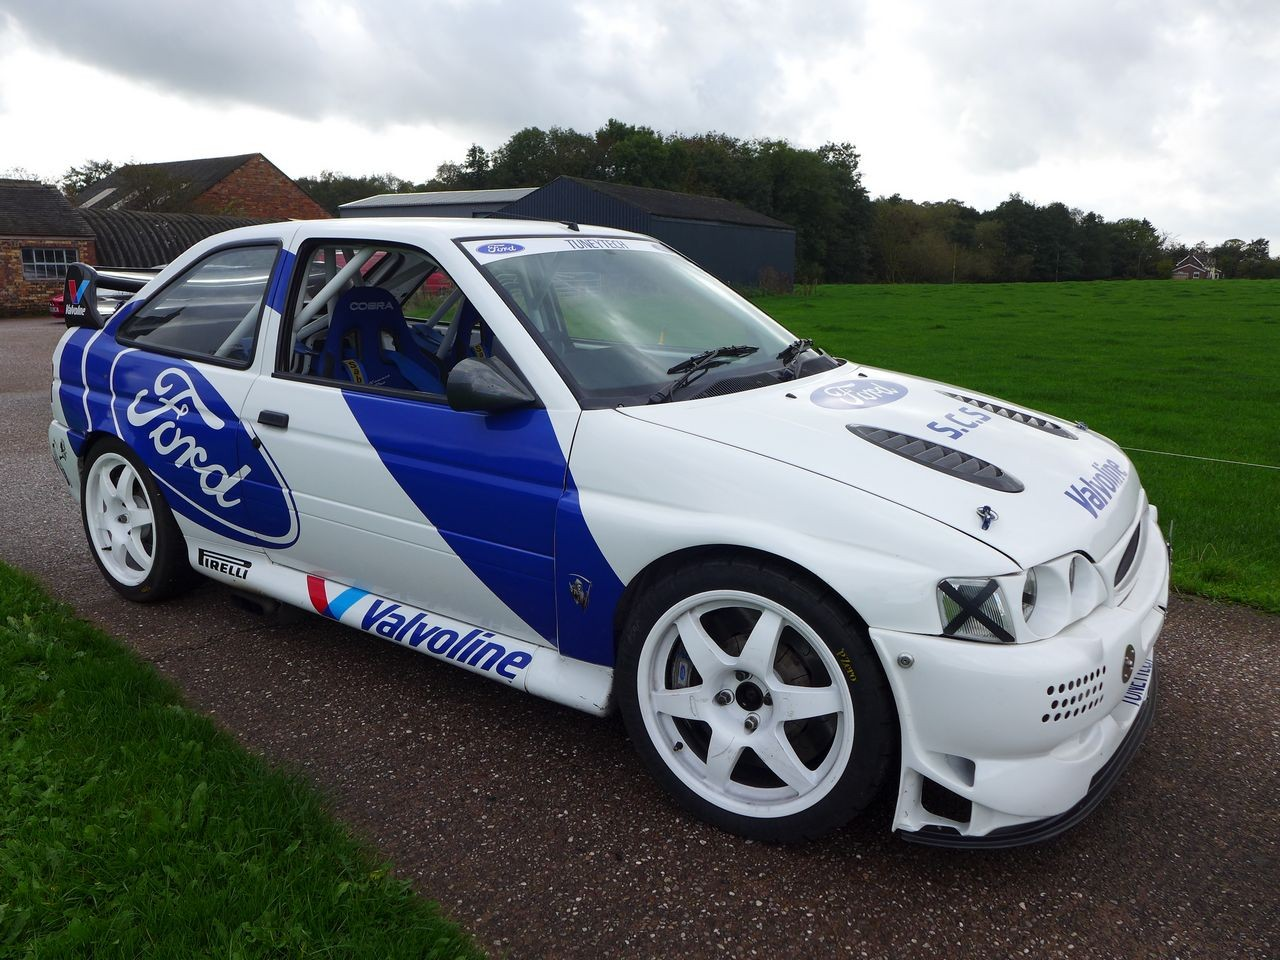 Colorful Ford Escort Cosworth Rally Car Embellishment - Classic Cars ...